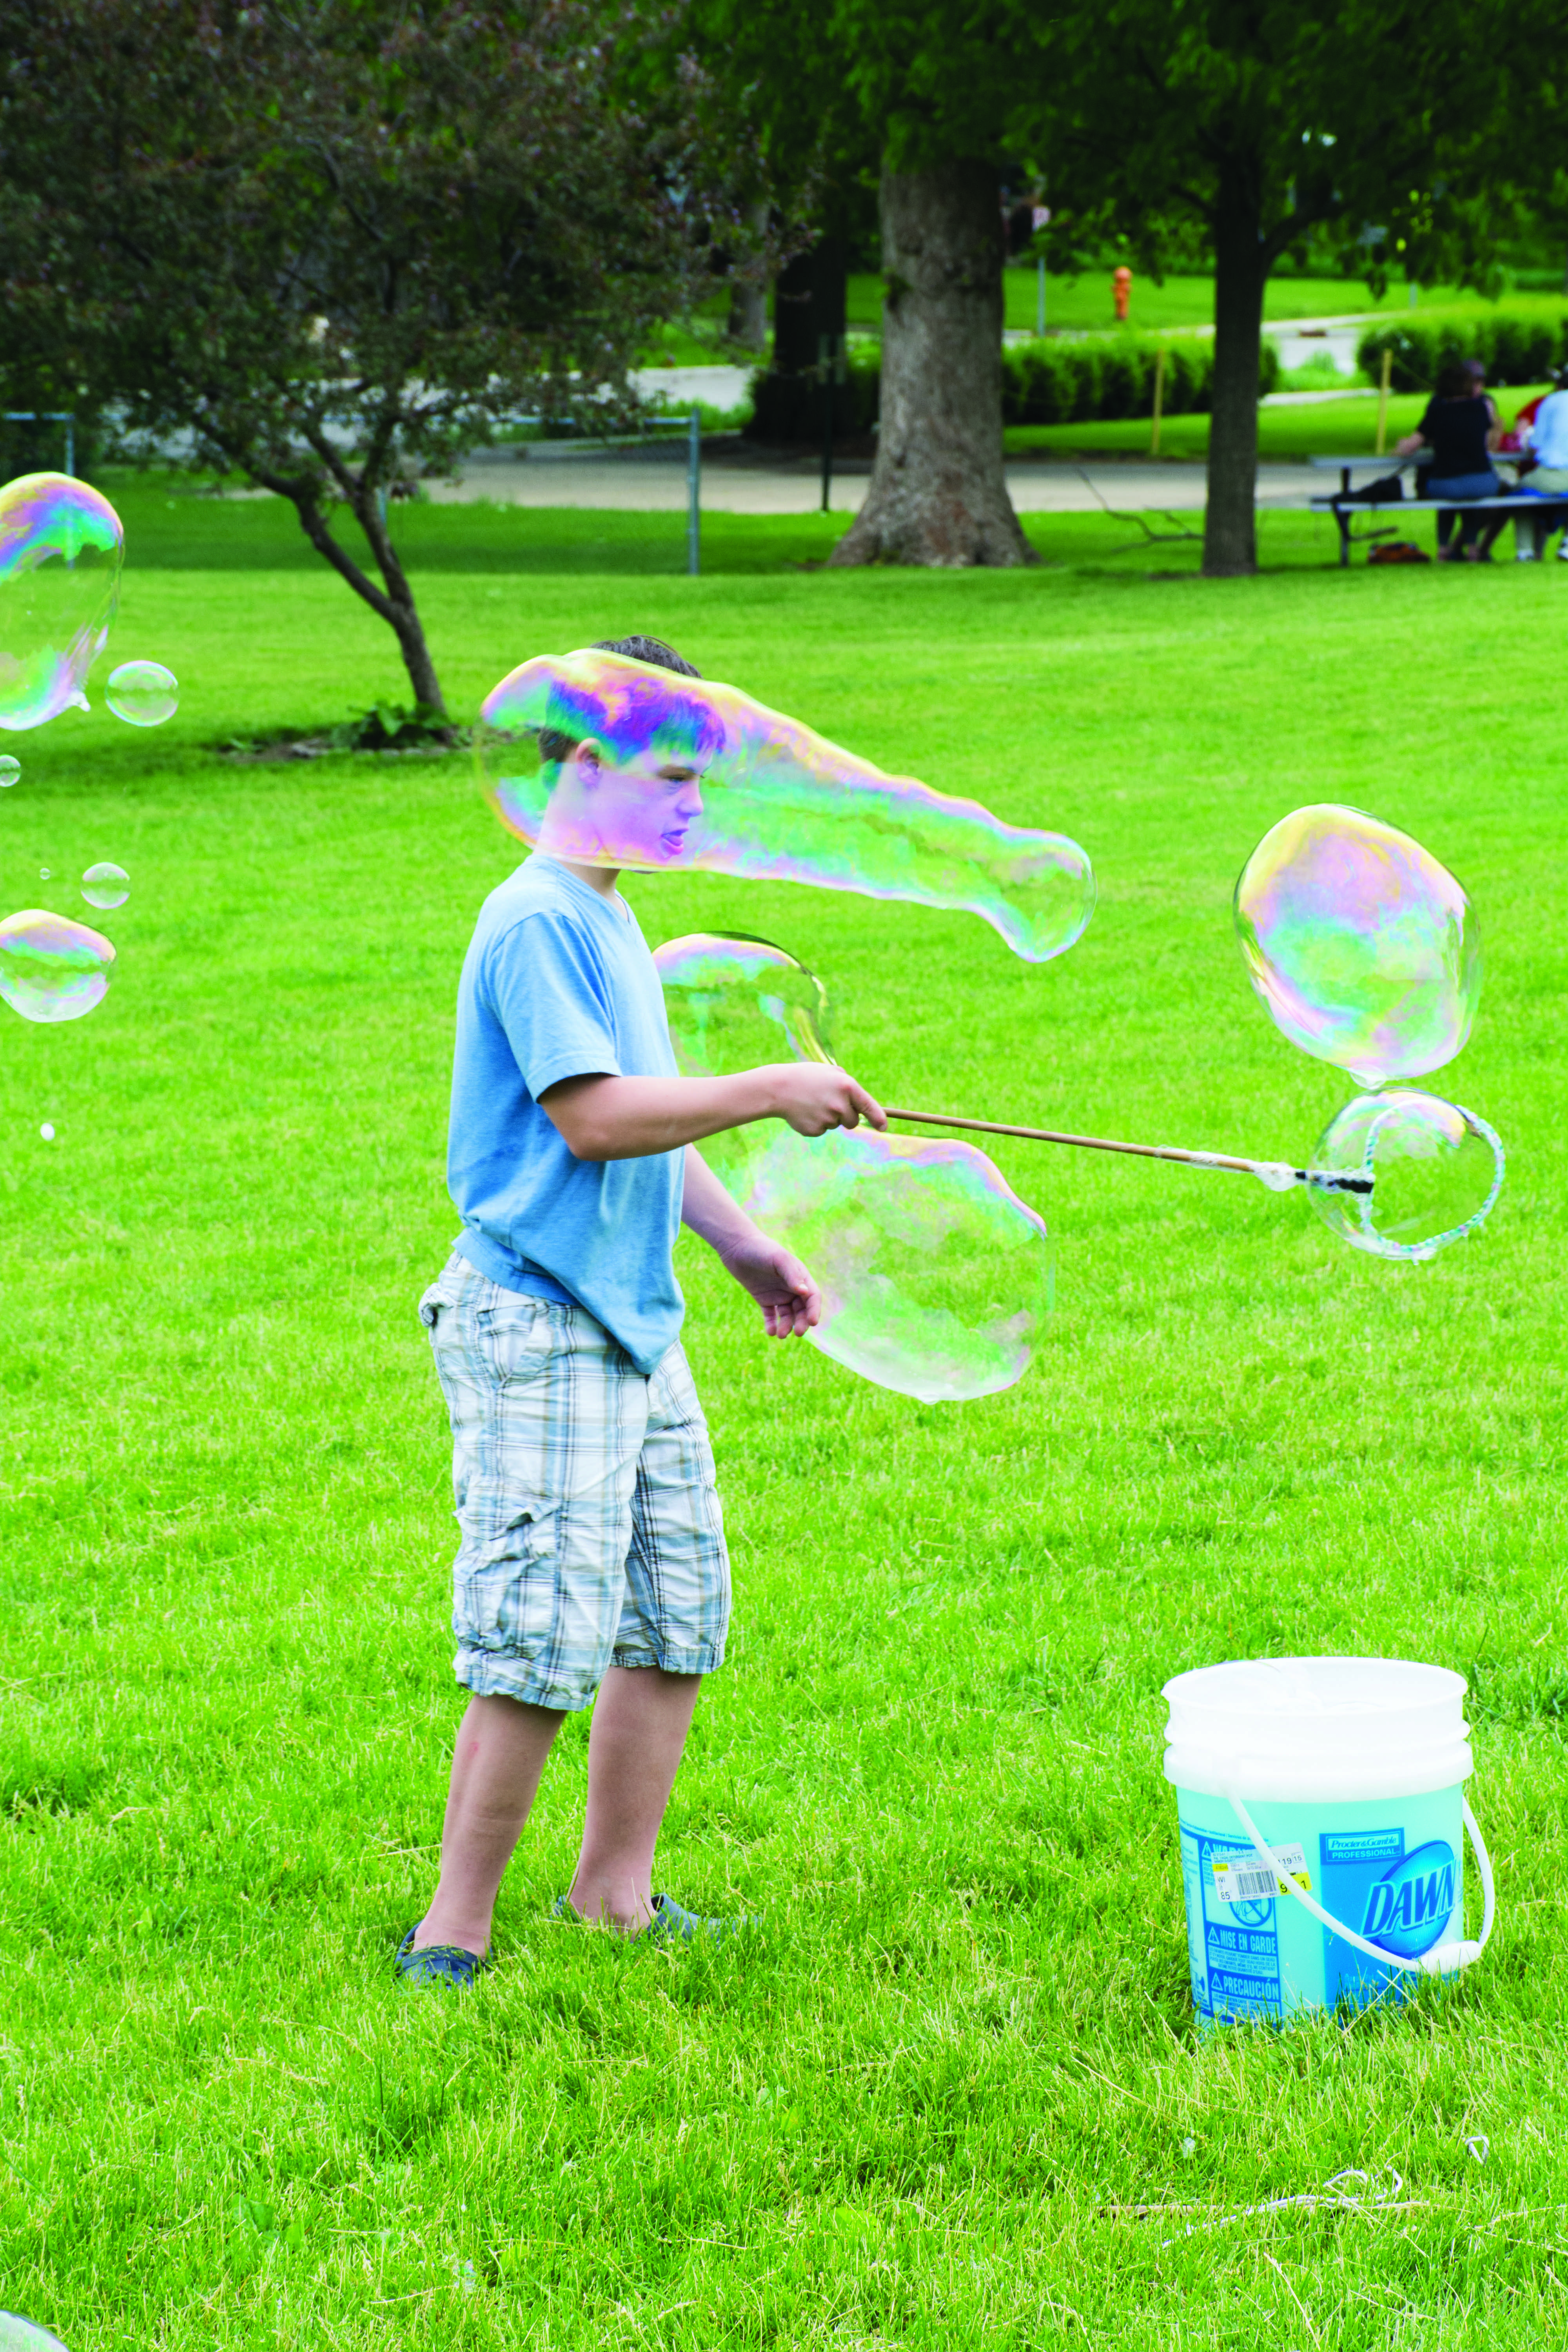 Hagen Barker, 13, a former South Side Elementary School student, makes bubbles at the 90th anniversary celebration.